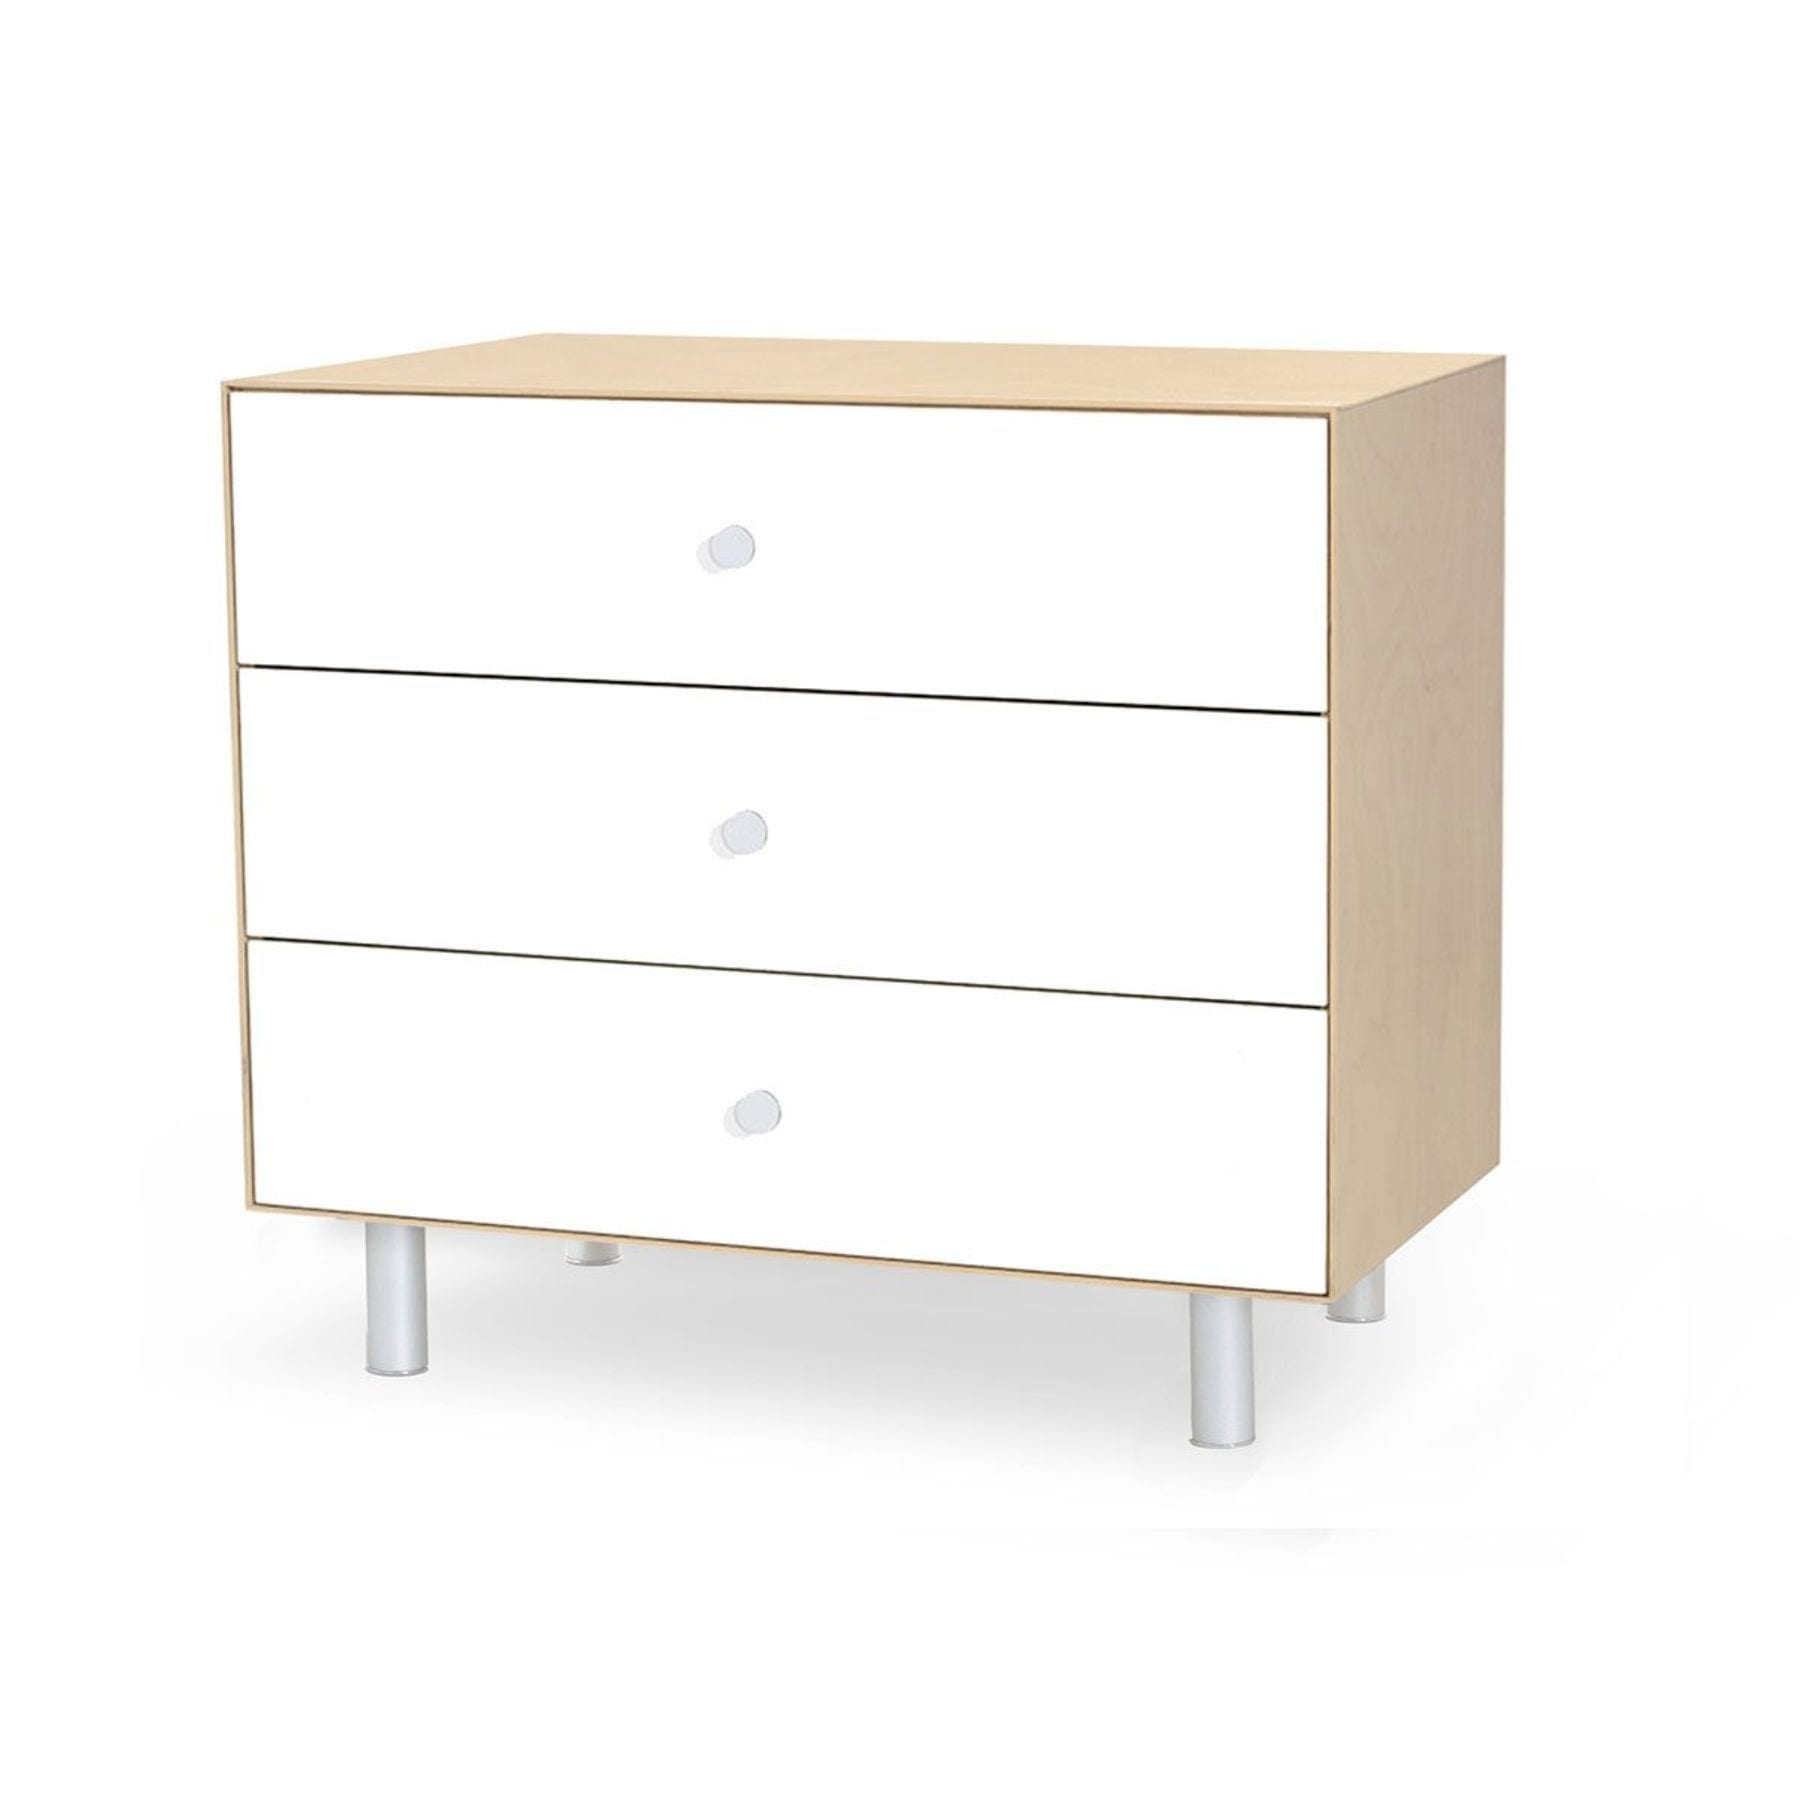 Oeuf Merlin 3 Drawer Dresser - huggle